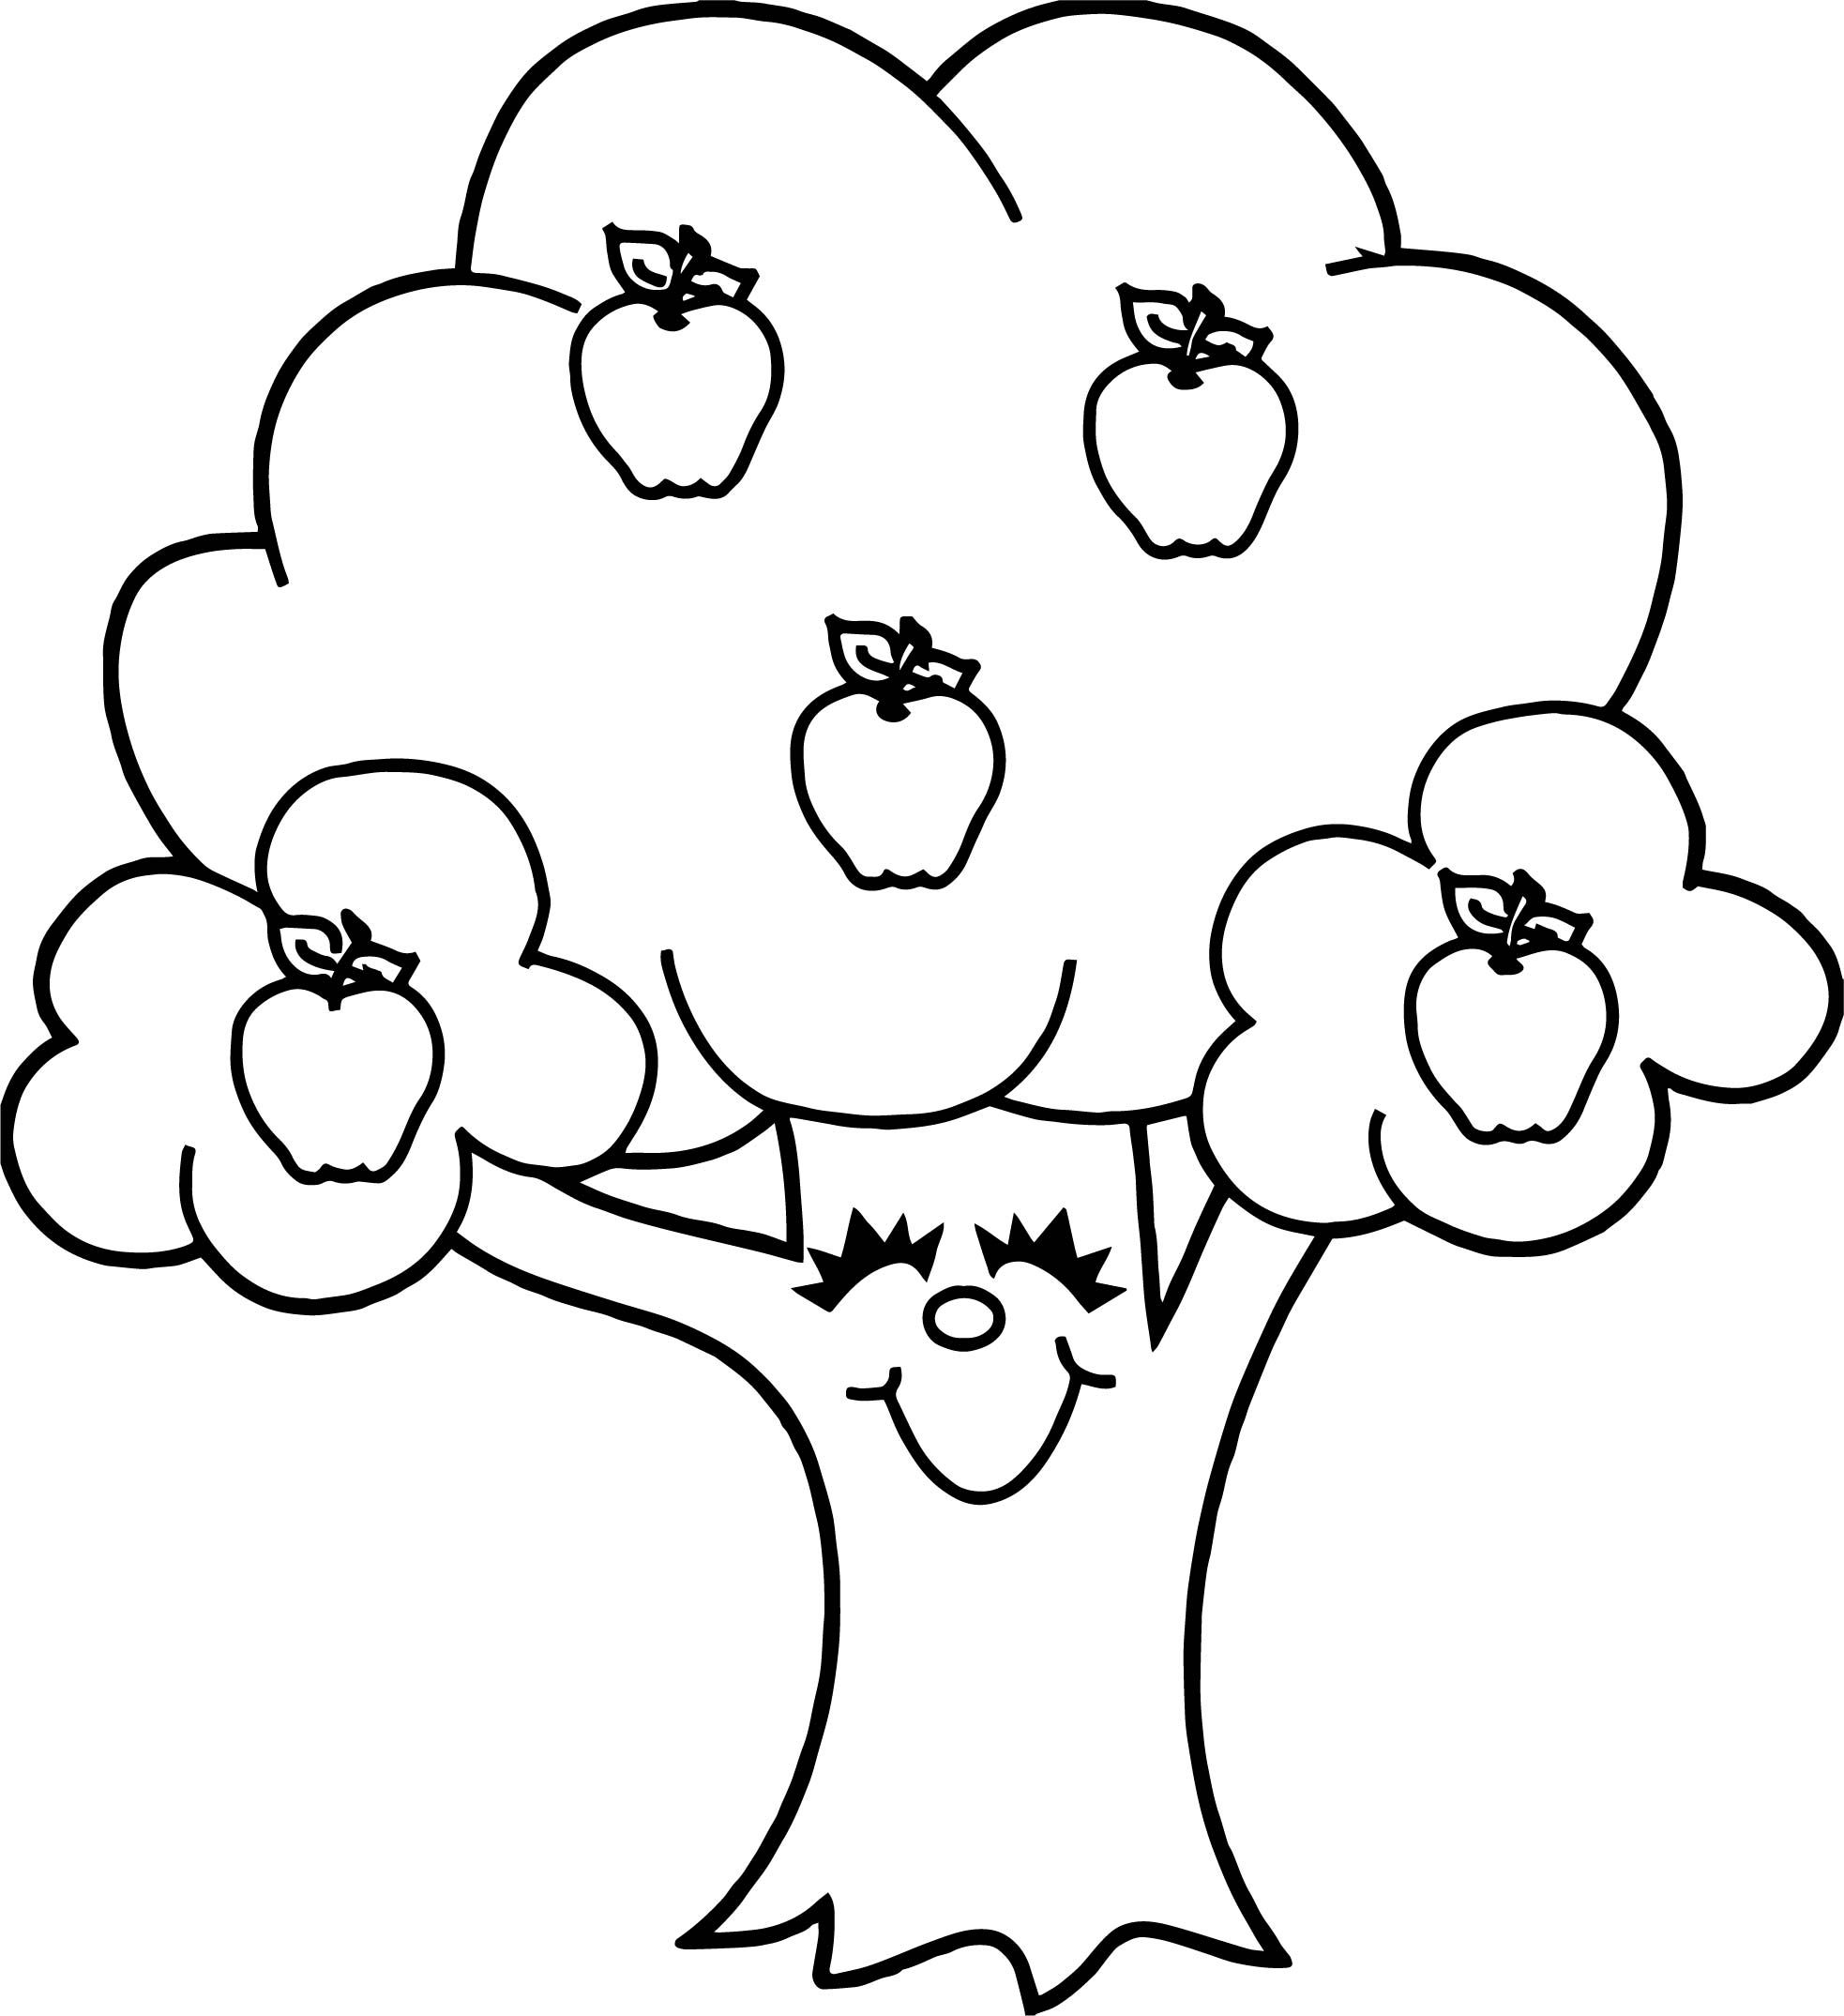 Fruit Tree Coloring Designs Collections